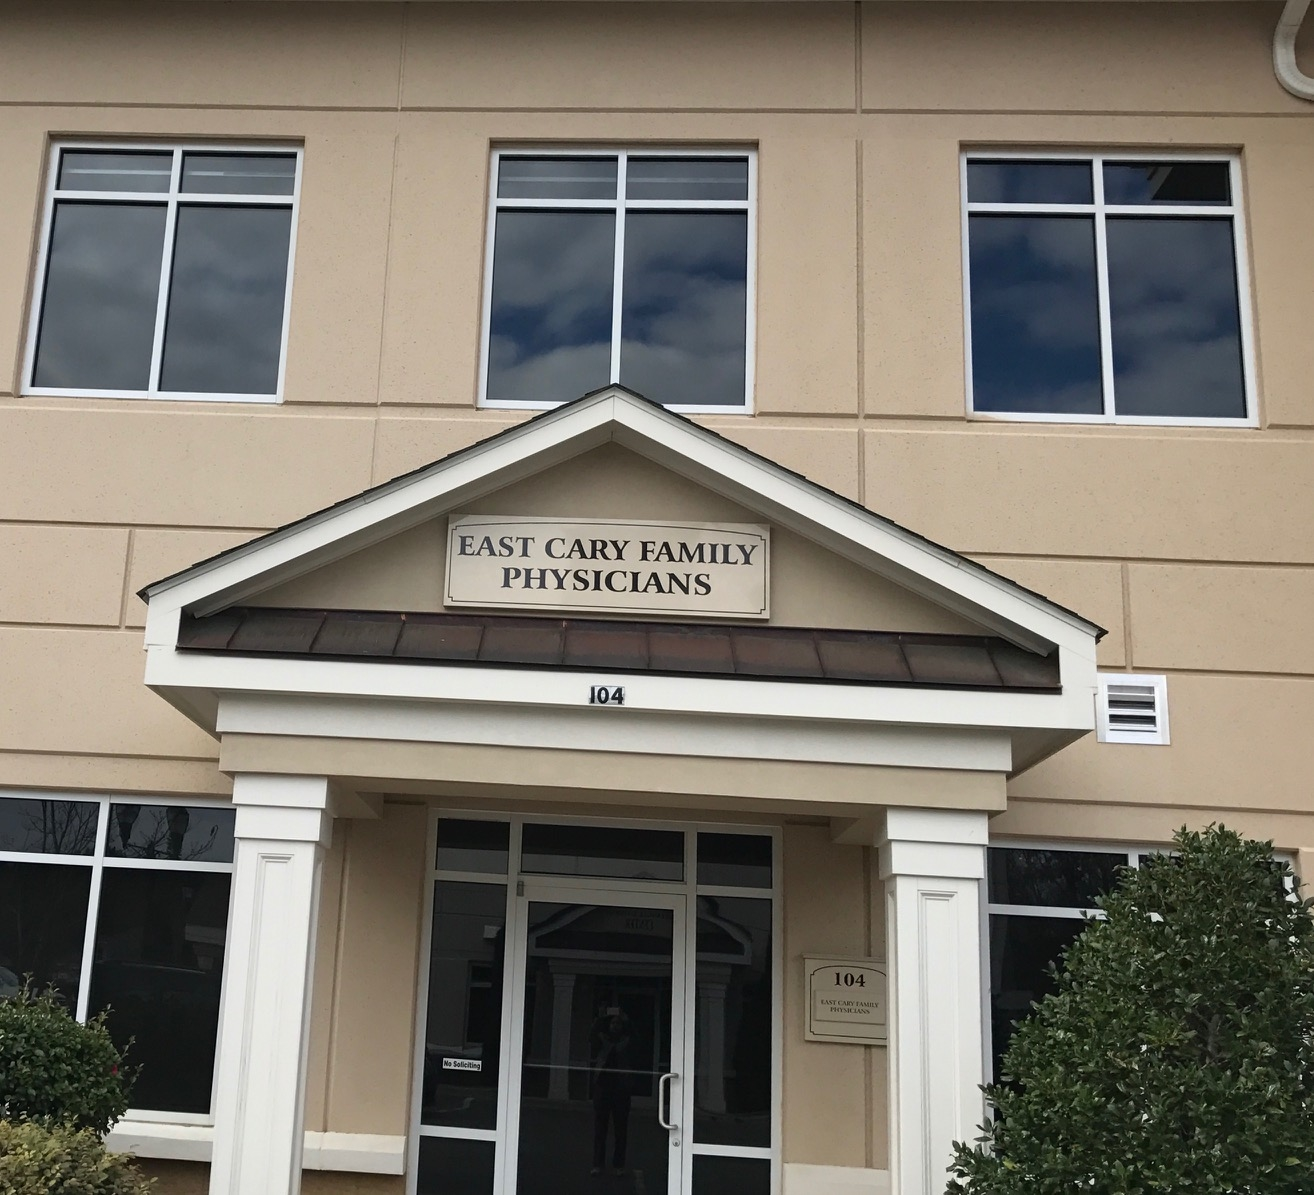 East Cary Family Physicians